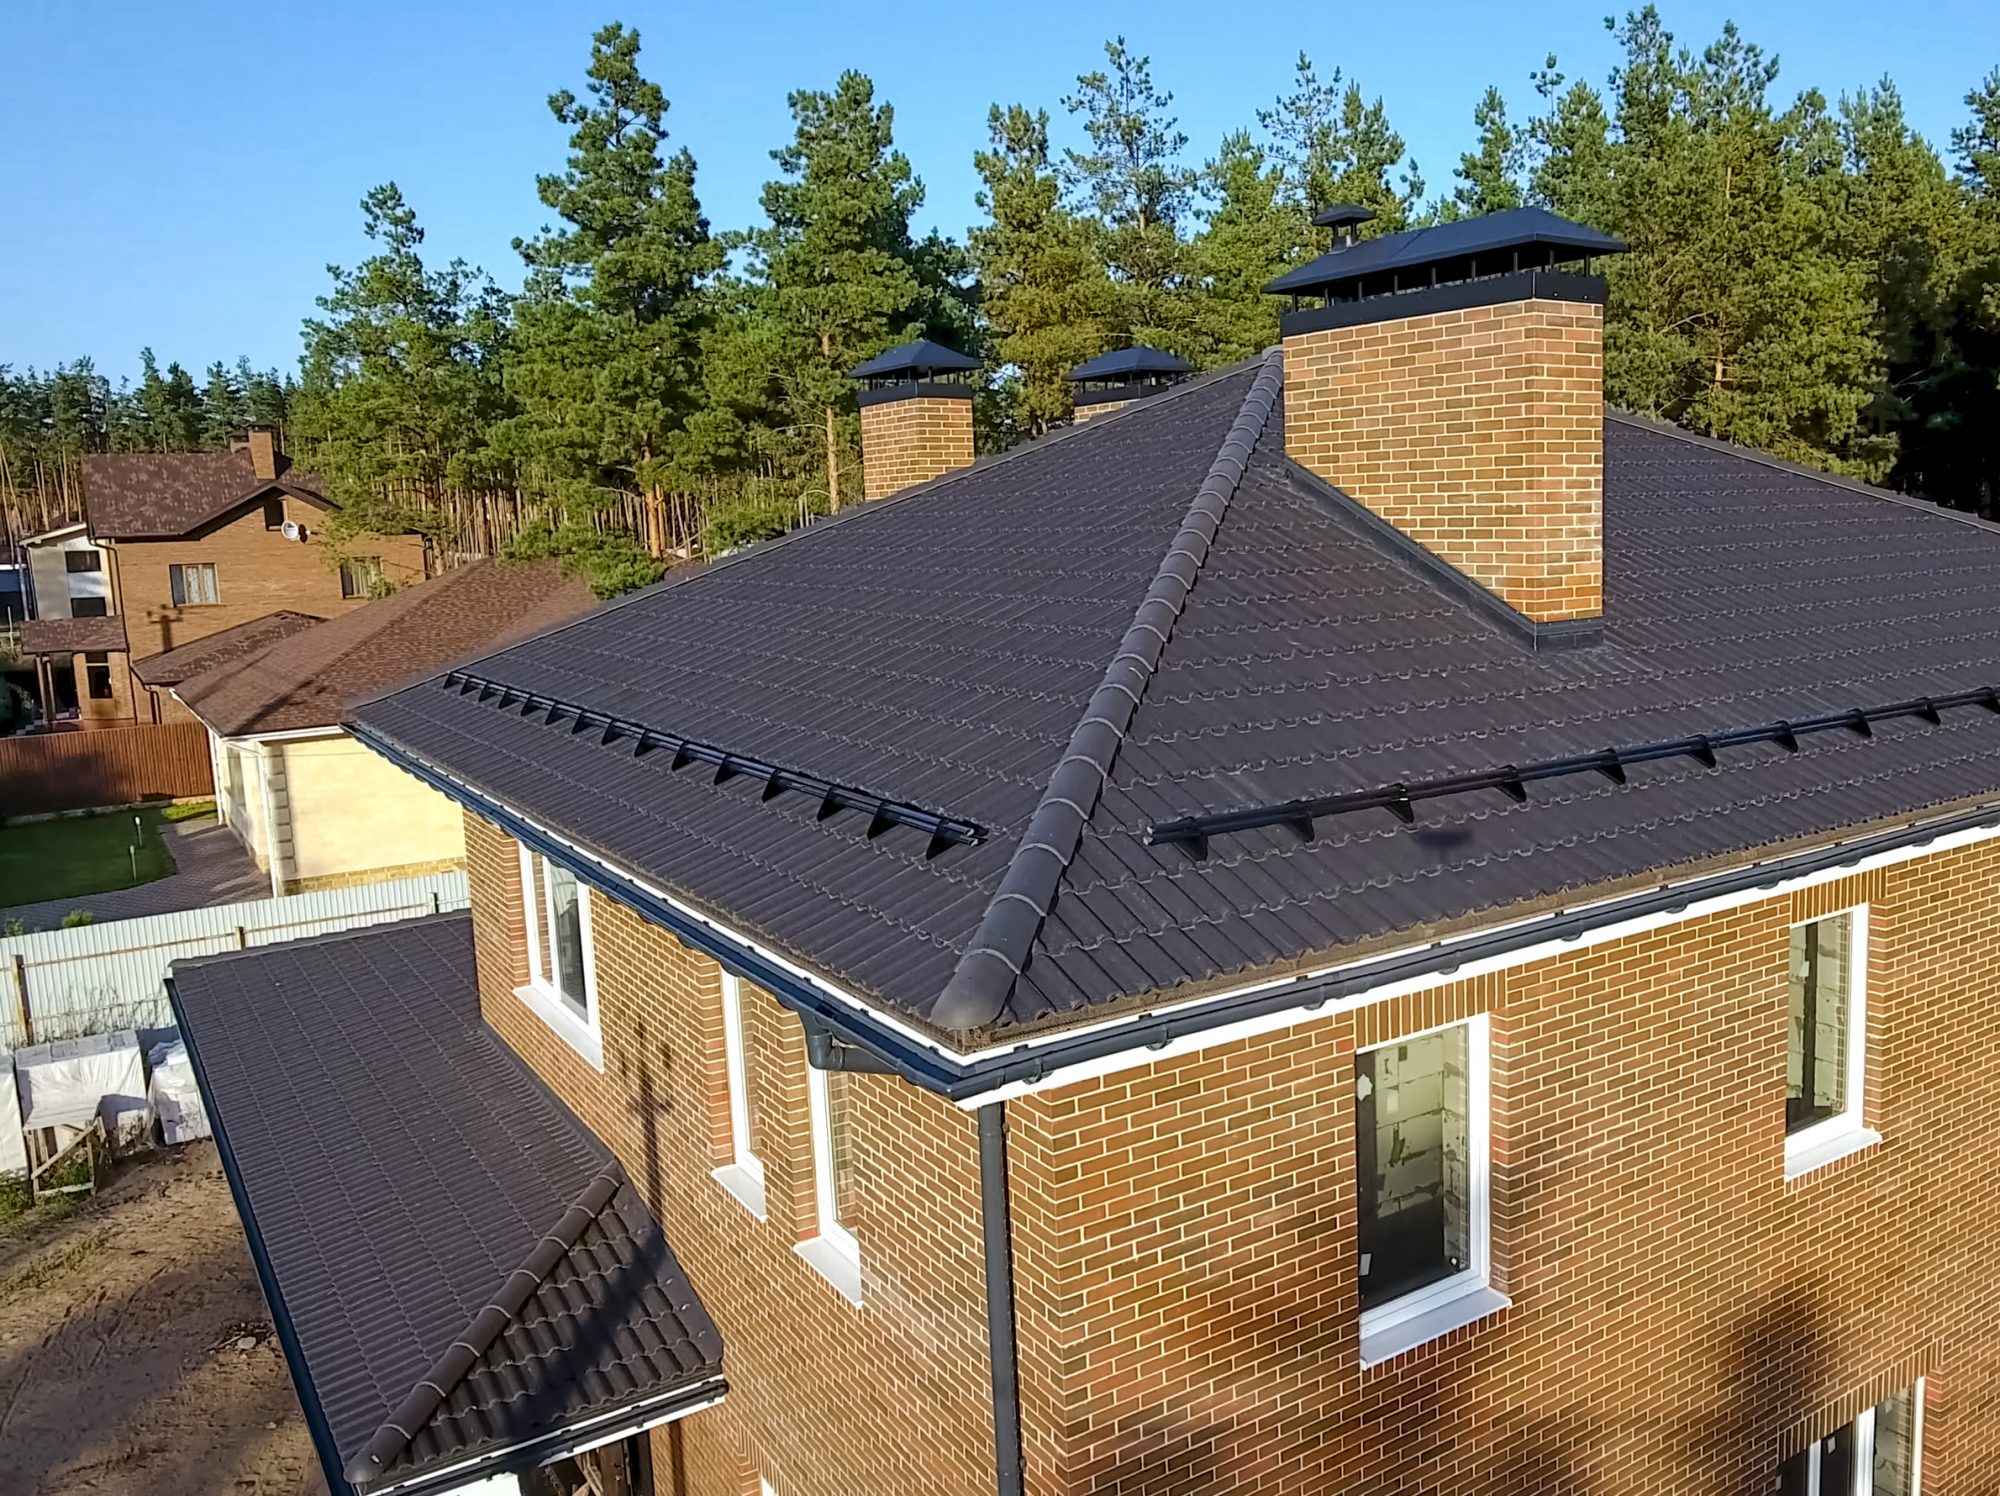 tile roof shingle tile roof installation synthetic ceramic tile roofing st louis missouri